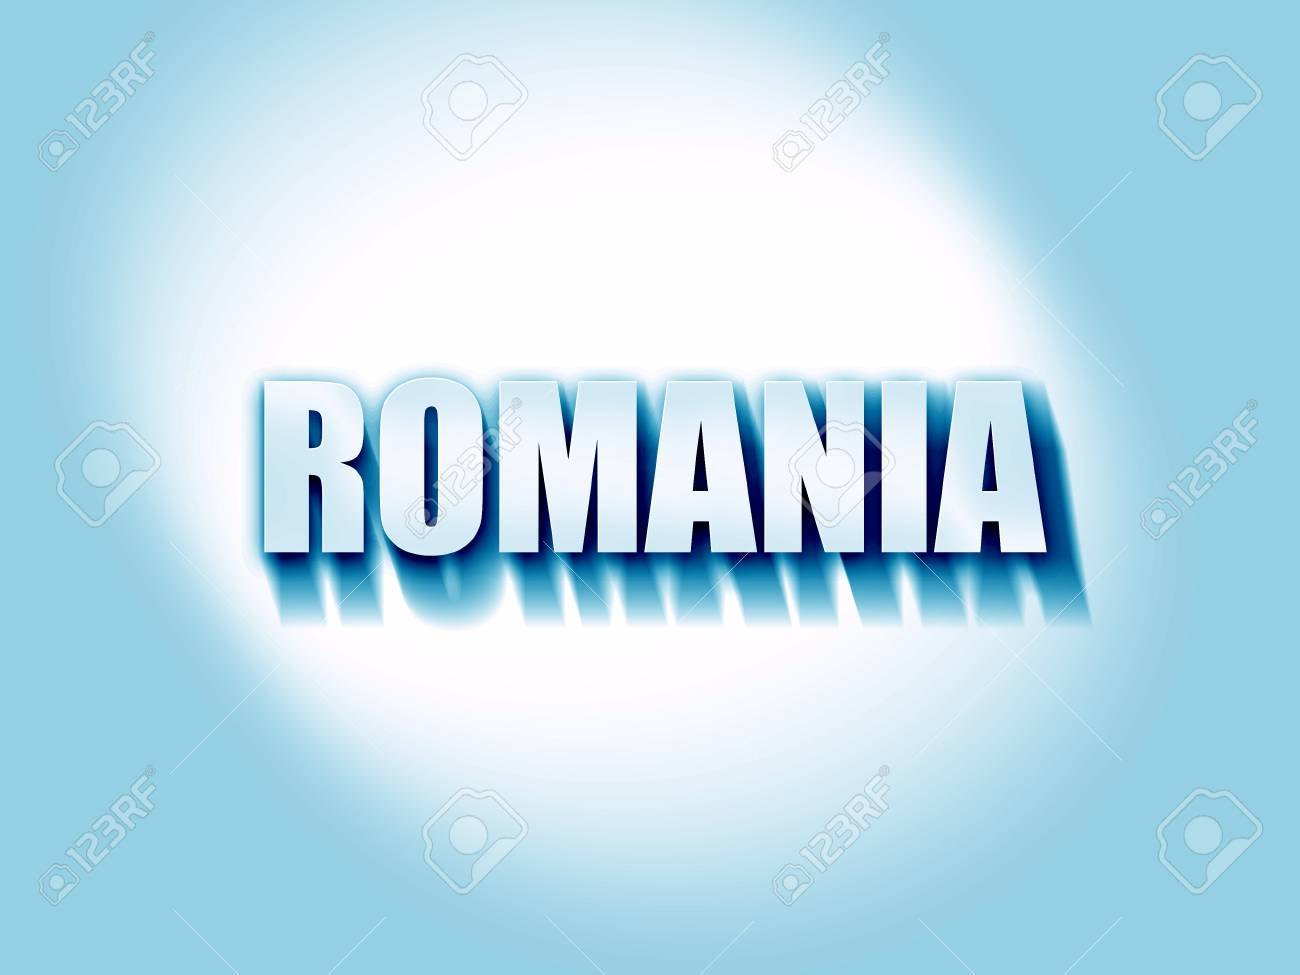 Greetings from romania card with some soft highlights stock photo greetings from romania card with some soft highlights stock photo 54554283 m4hsunfo